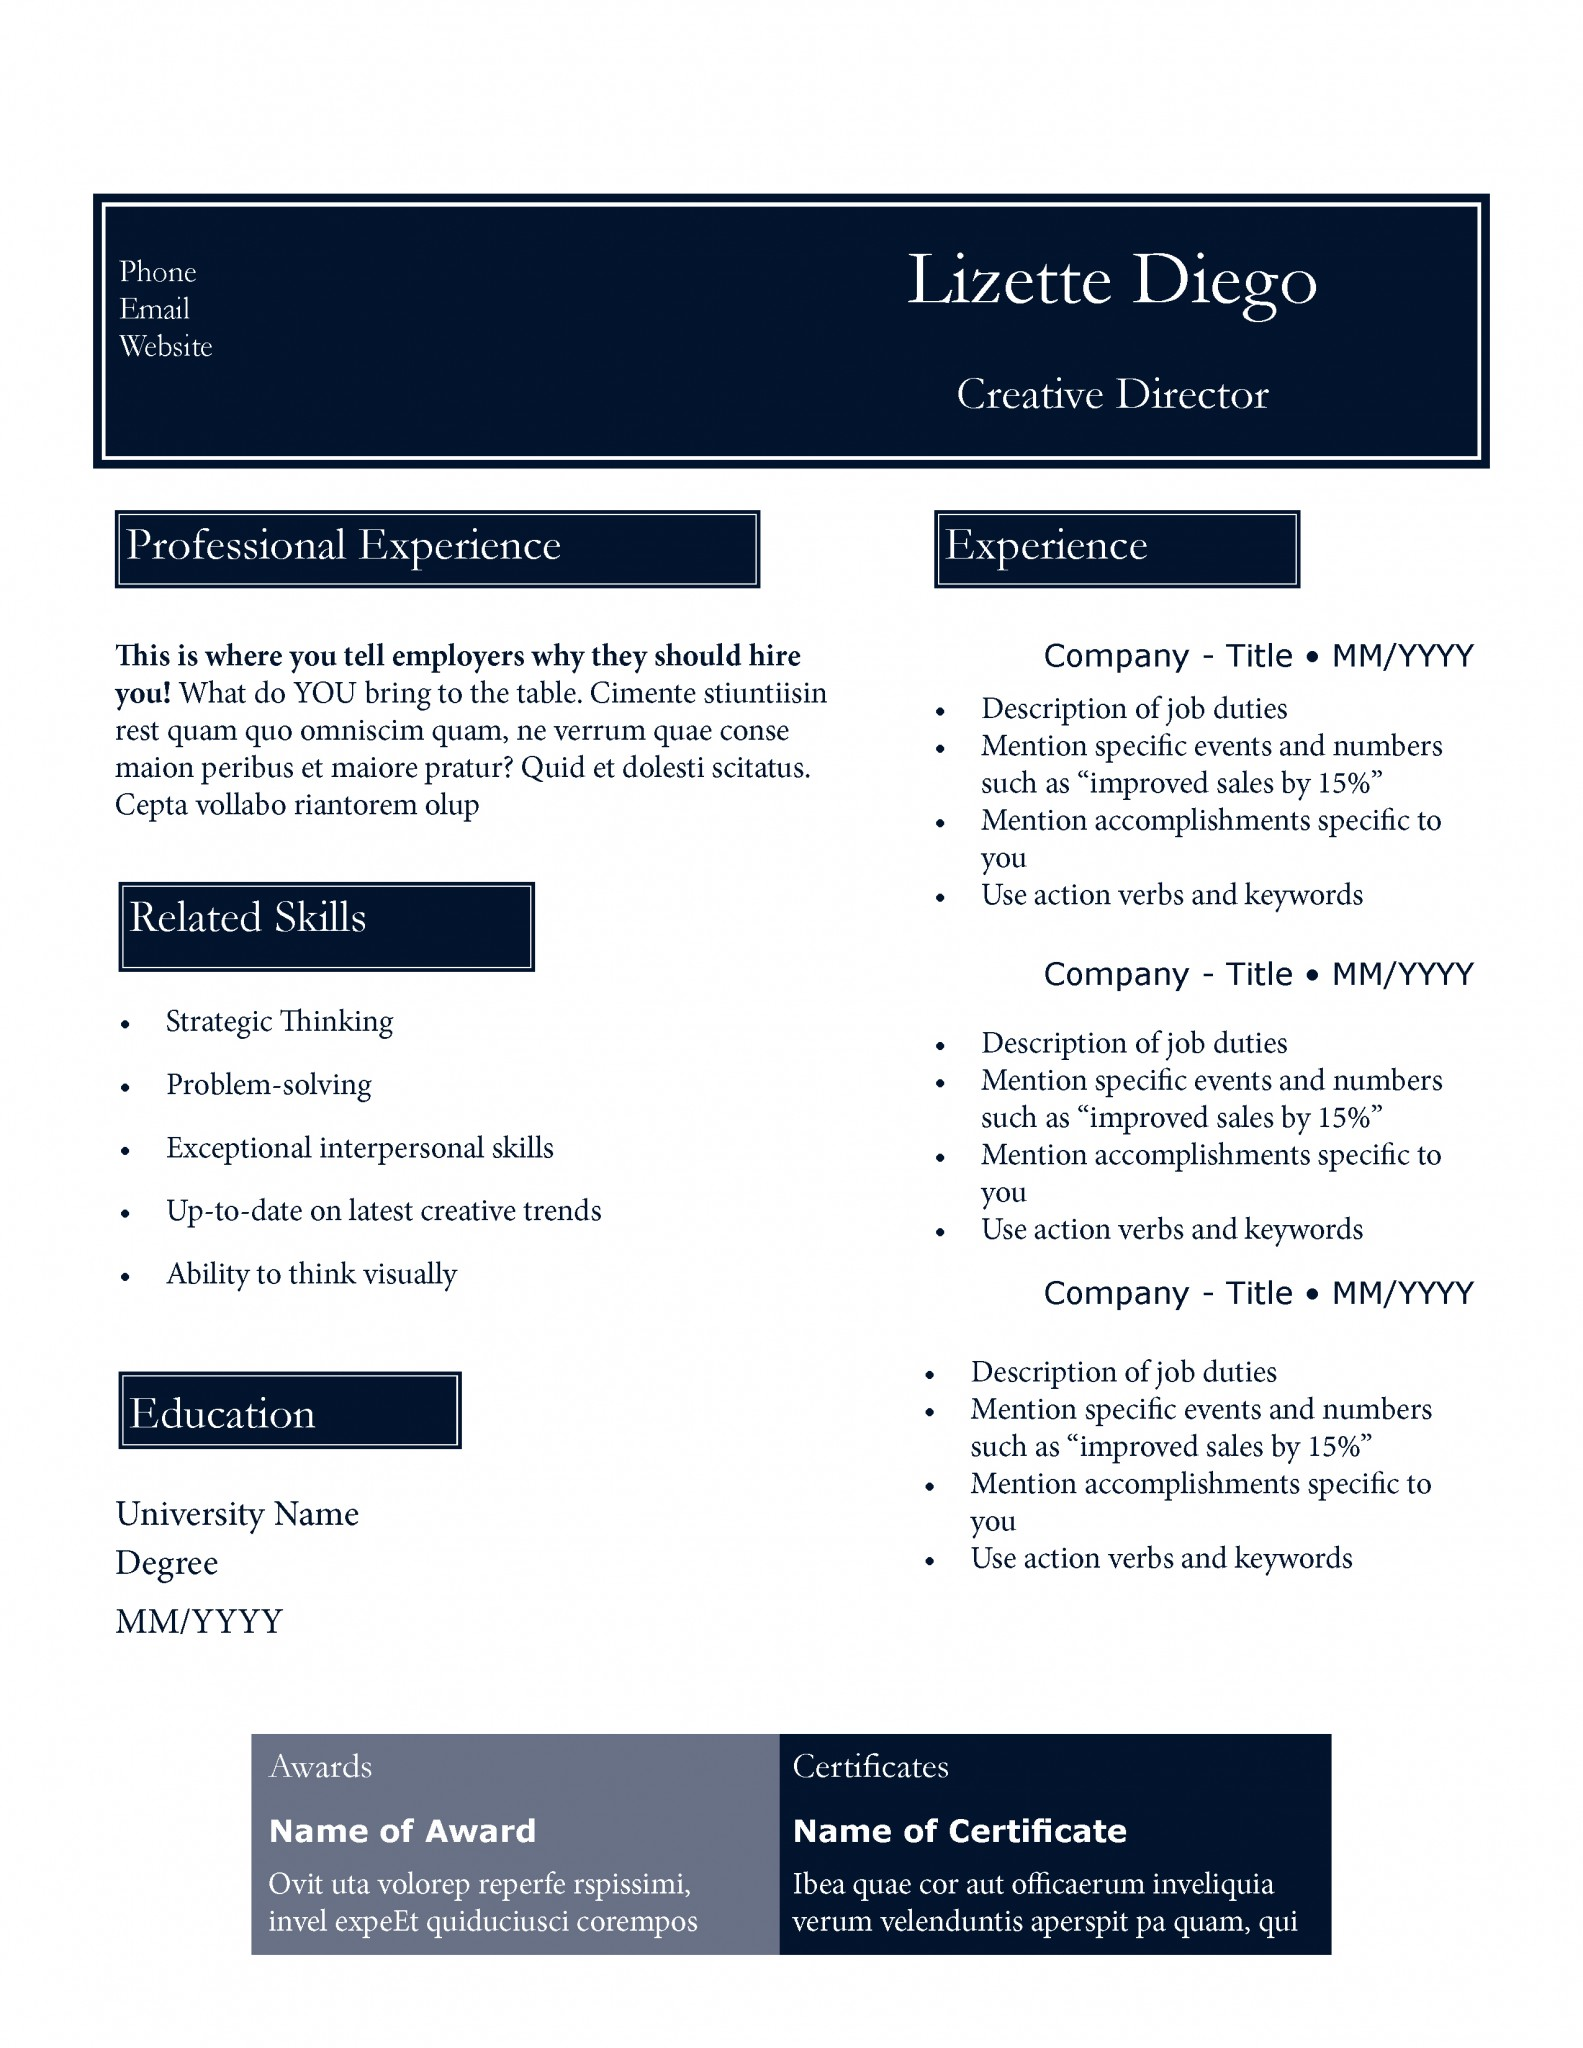 new slick resume templates pack the grid system